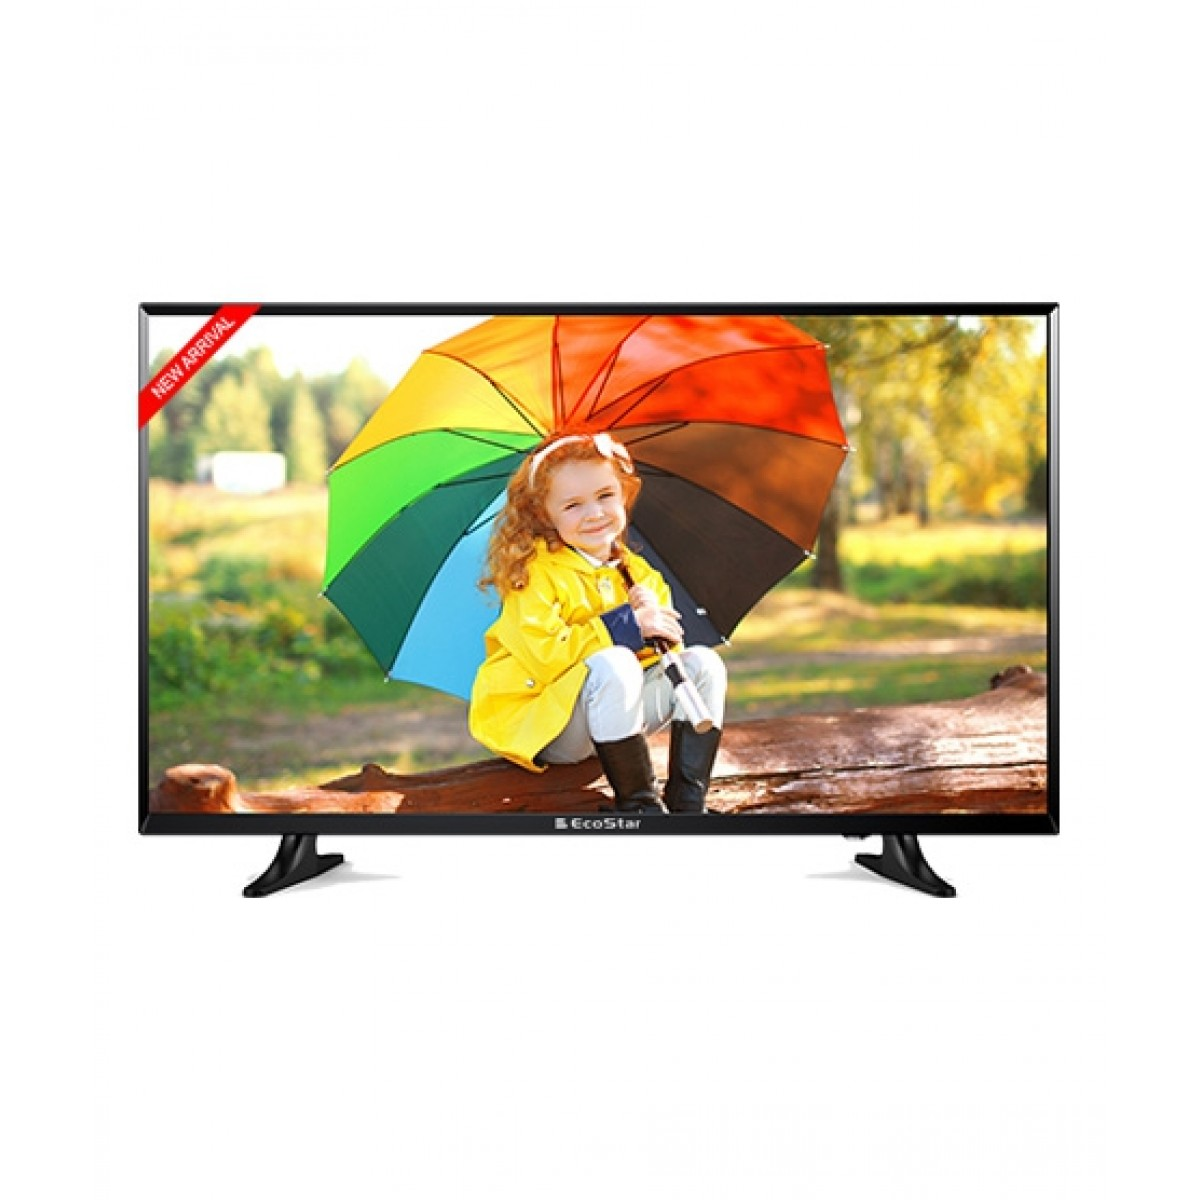 "EcoStar 40"" Smart LED TV (CX-40U852P)"